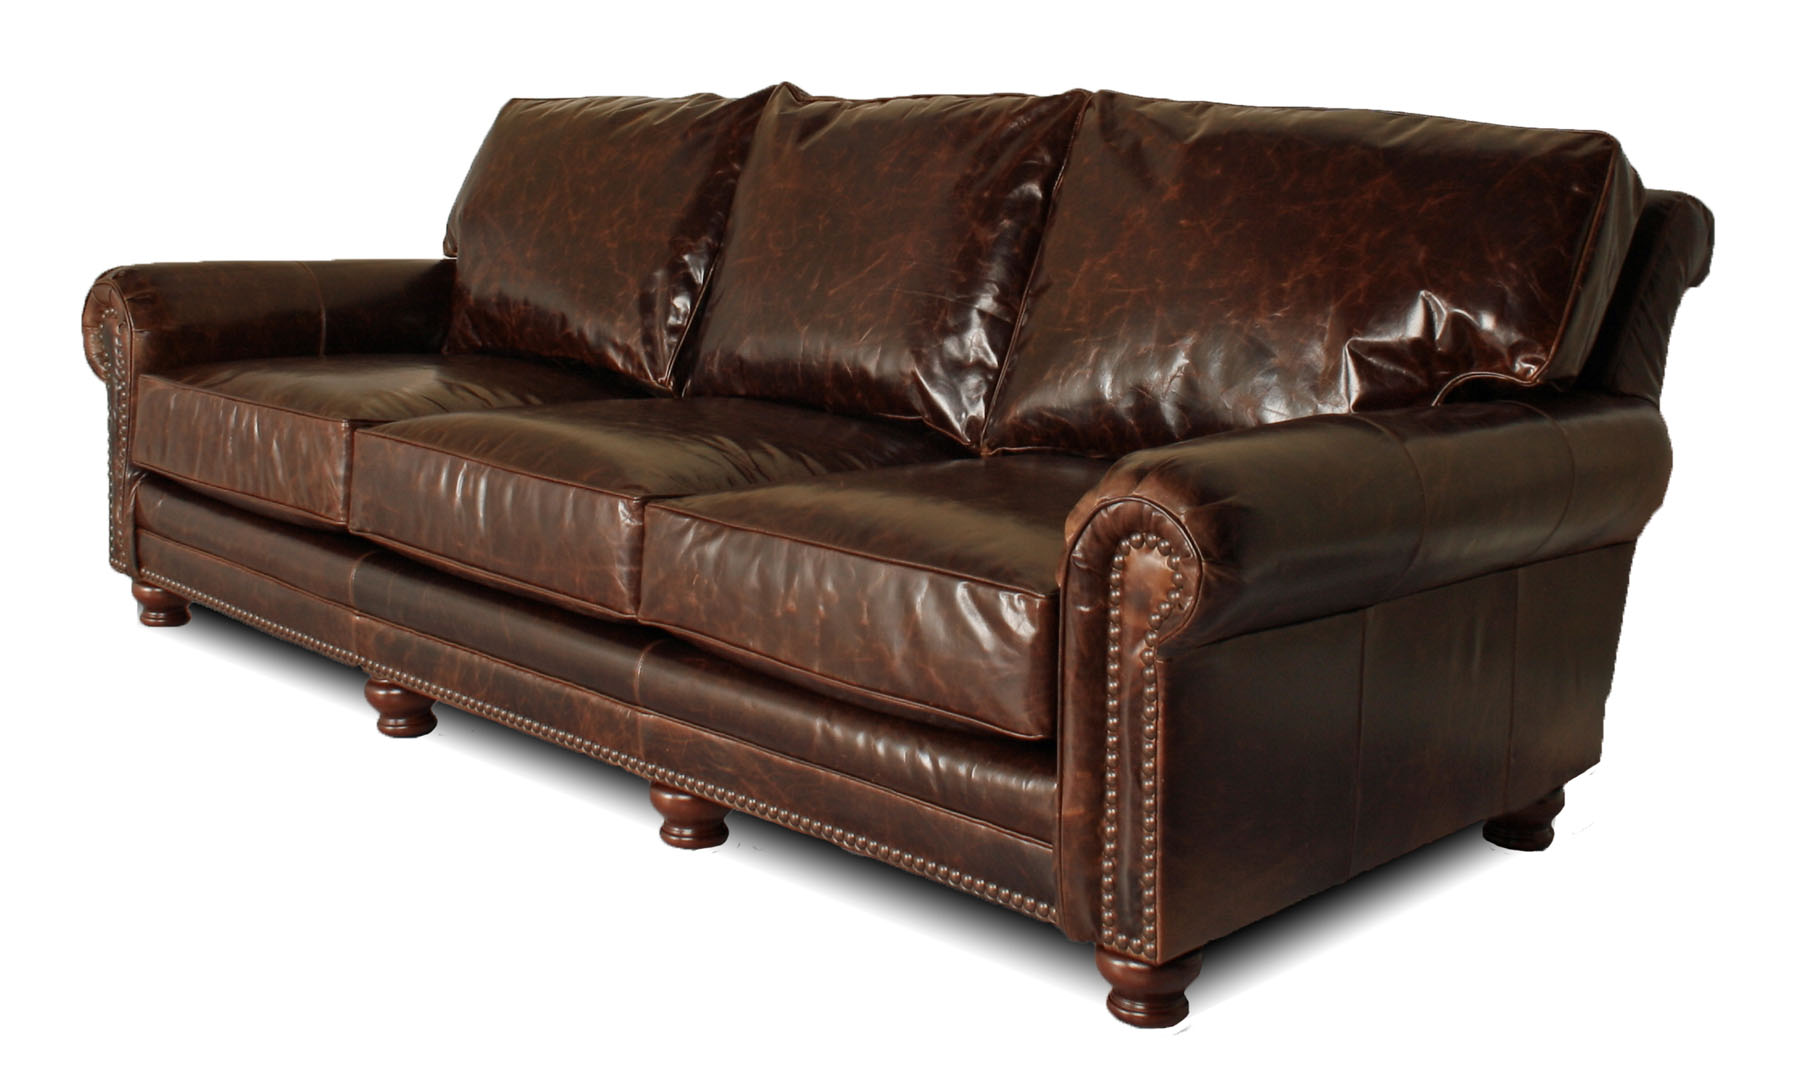 Kingston deep leather furniture for Leather furniture